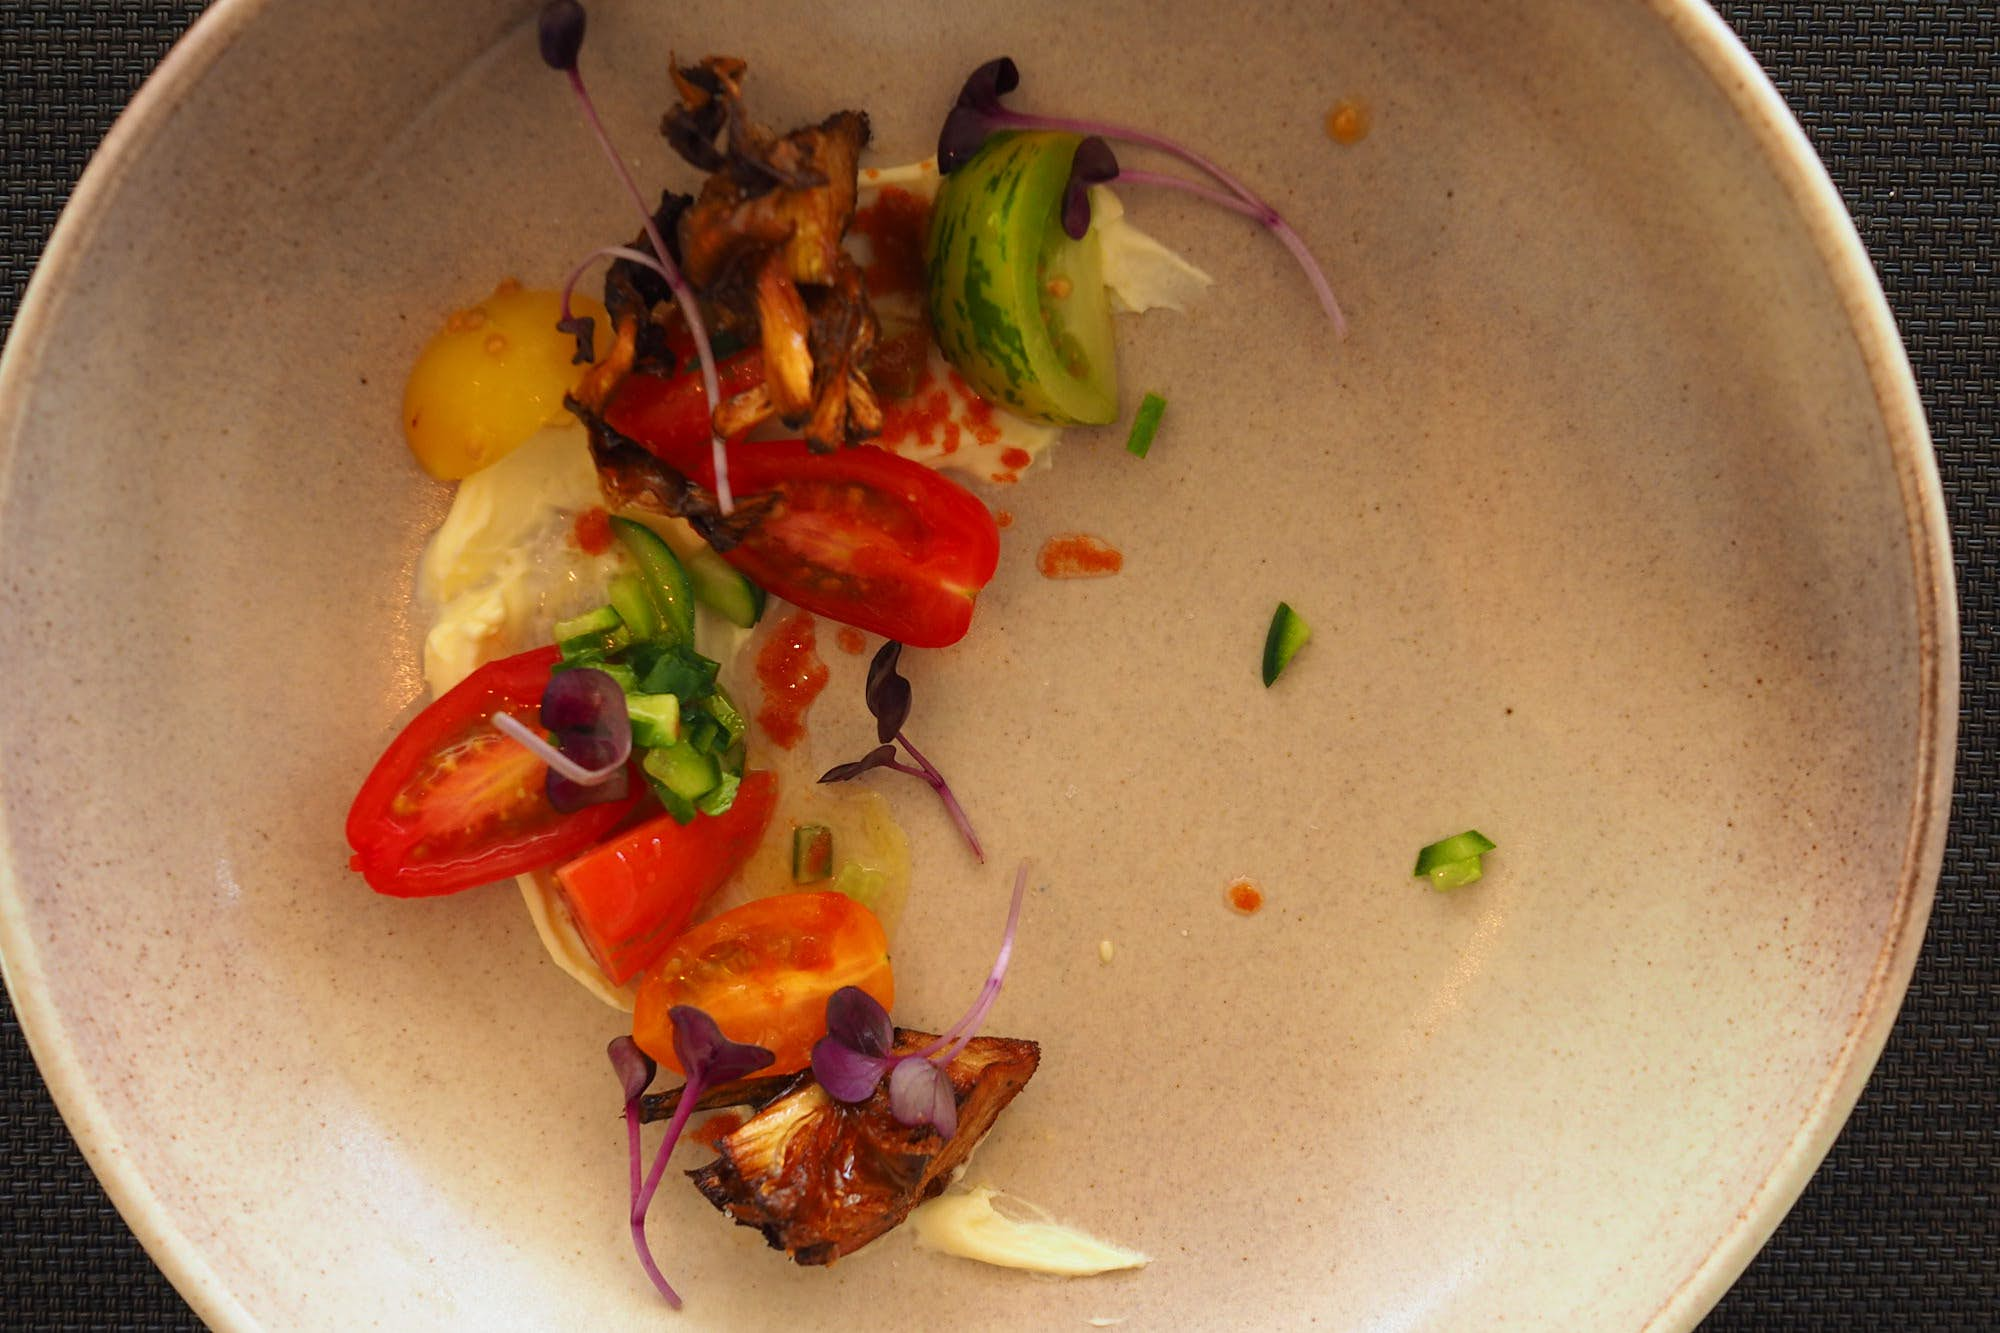 Kangaroo Island food - Southern Ocean Lodge meal of fresh vegetables and a light dressing